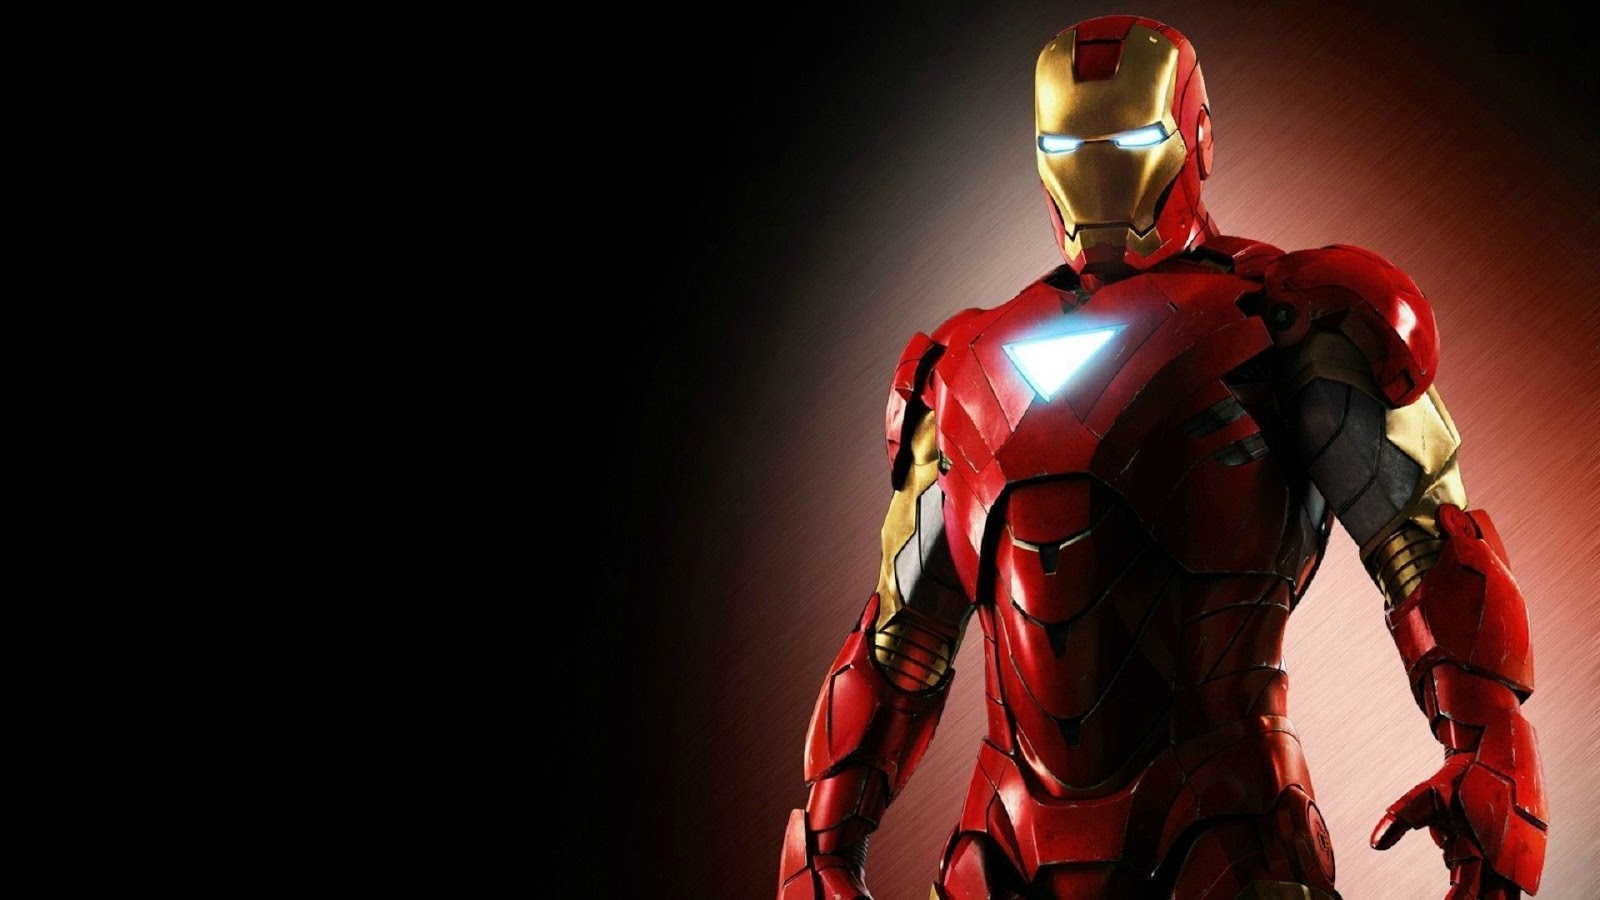 Super Hero Iron Man Images